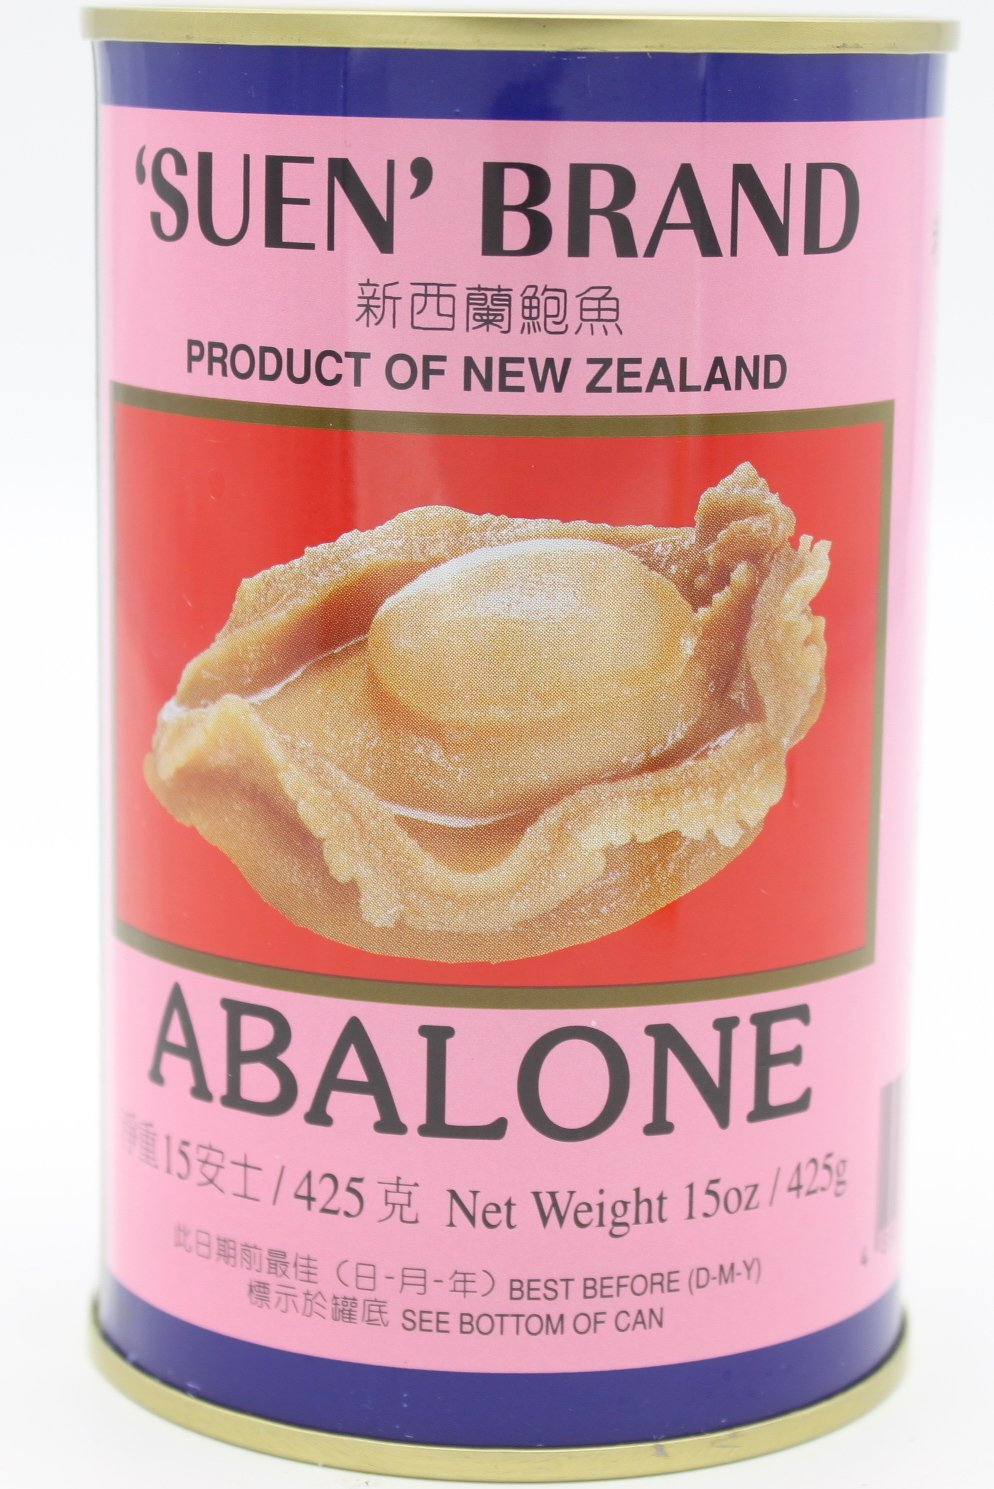 Canned Seafood Popular Cuisine Ingredient Suen Brand Canned Abalone 信字鮑魚 (net weight 15oz 425grams) Per Order Free Worldwide Air Mail